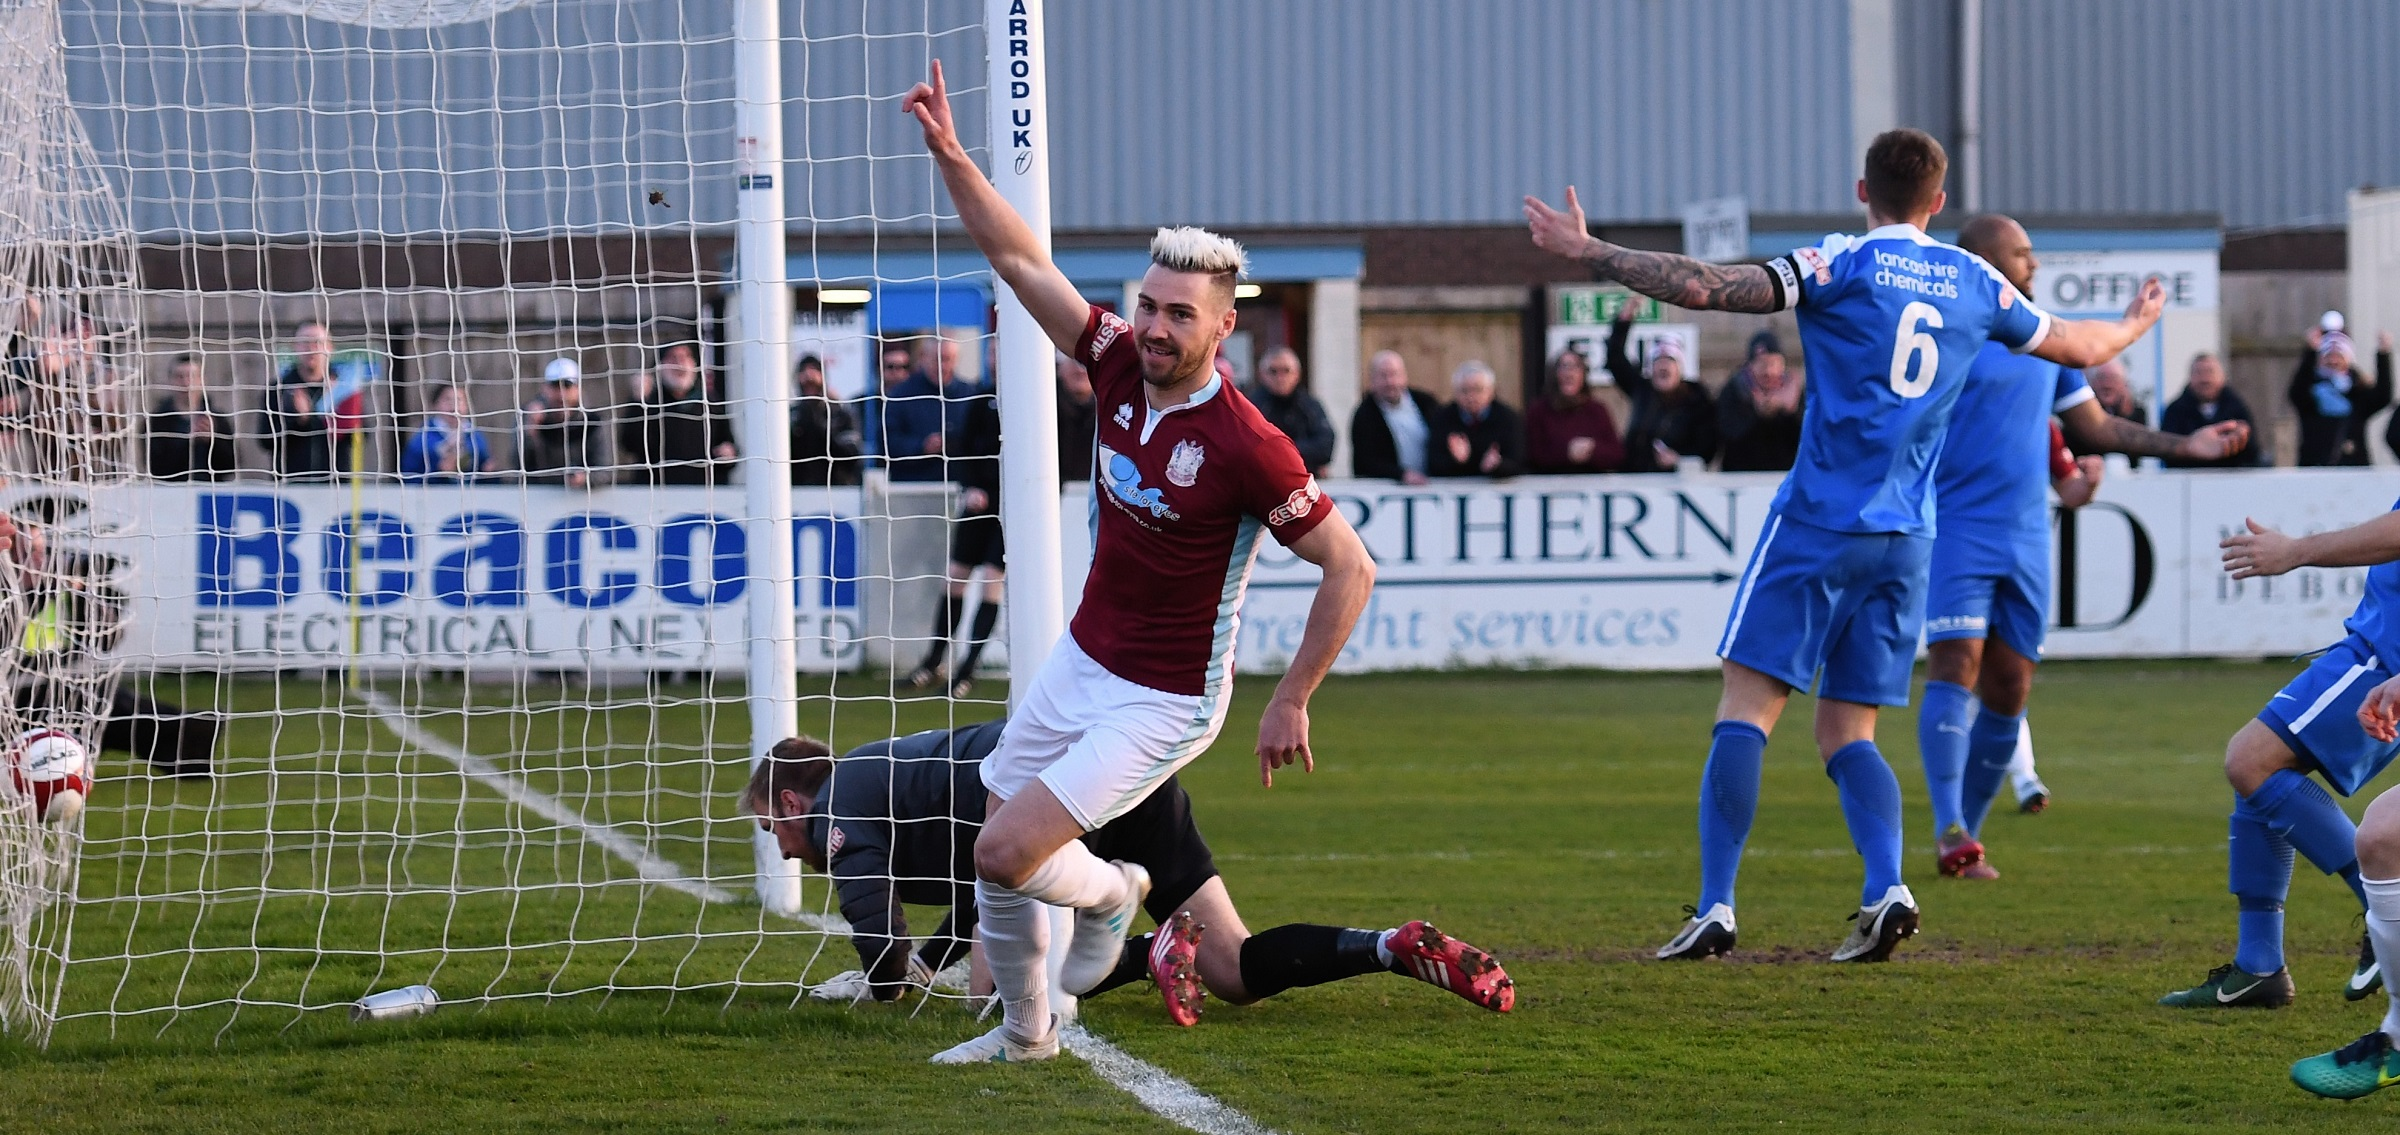 South Shields 3-0 Glossop North End: Promotion secured for Mariners